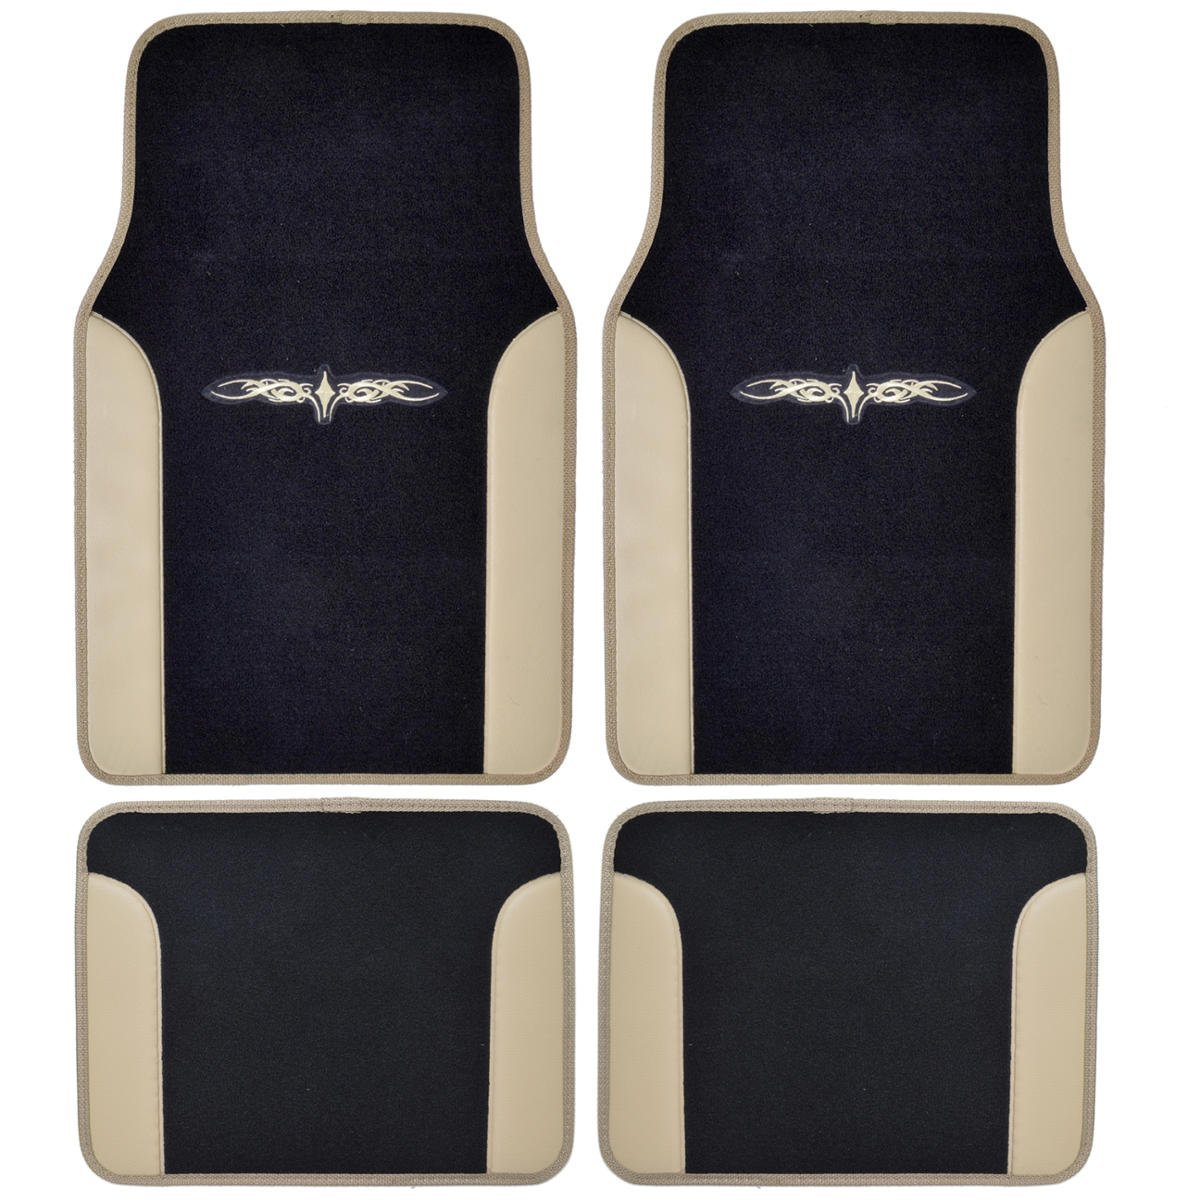 A Set of 4 Universal Fit Plush Carpet with Vinyl Trim Floor Mats For Cars / Trucks - Tribal Tan, Revitalize your interior style with BDK Rubber/Carpet Pro floor mats By BDK